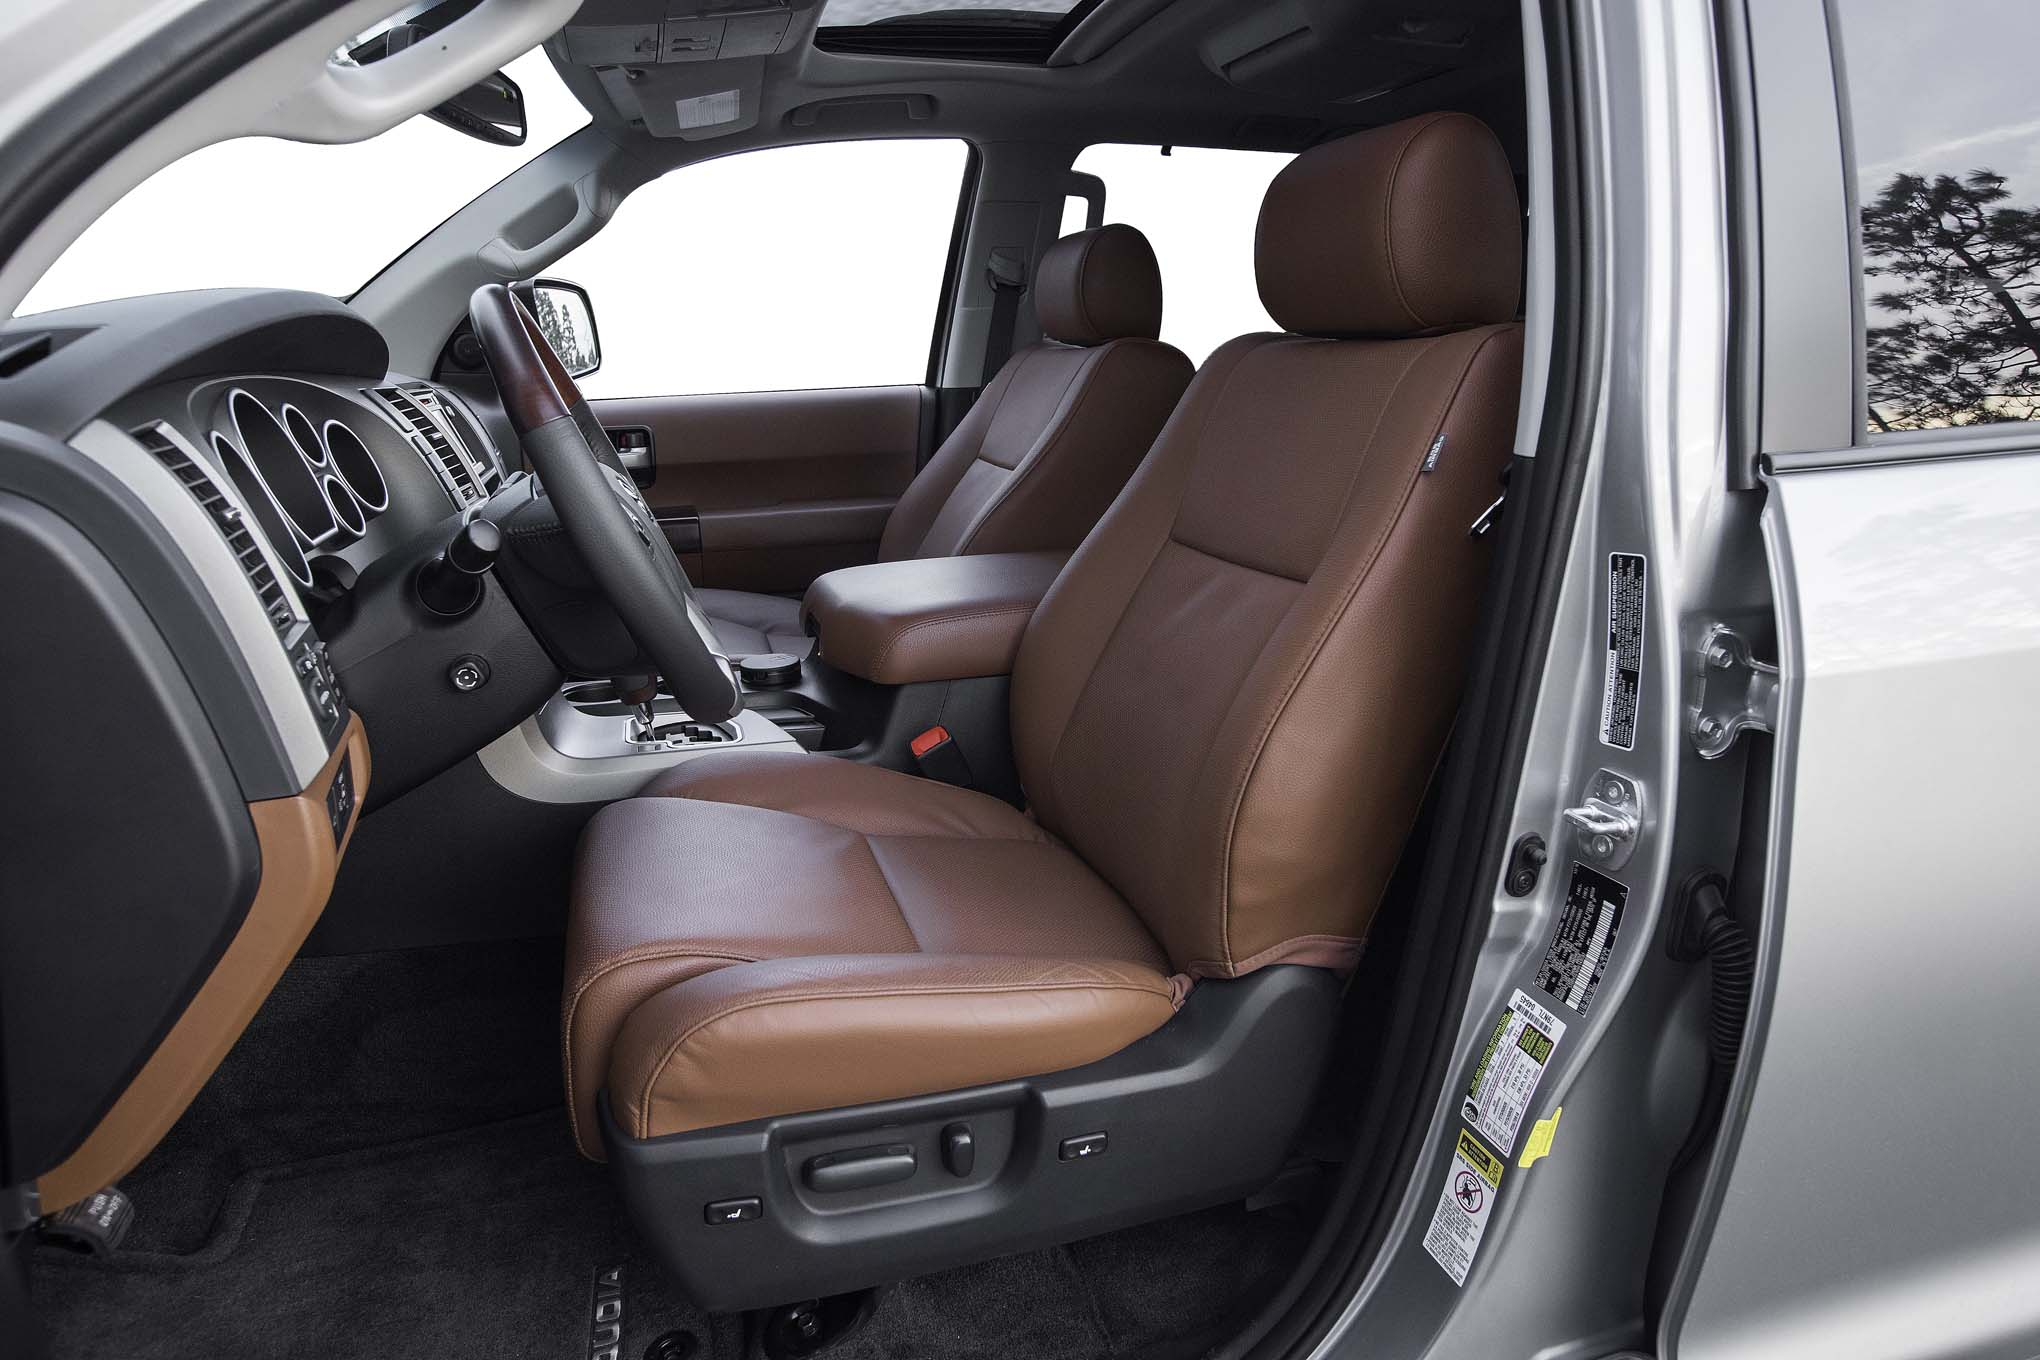 2017-Toyota-Sequoia-4×4-Platinum-front-interior-seats